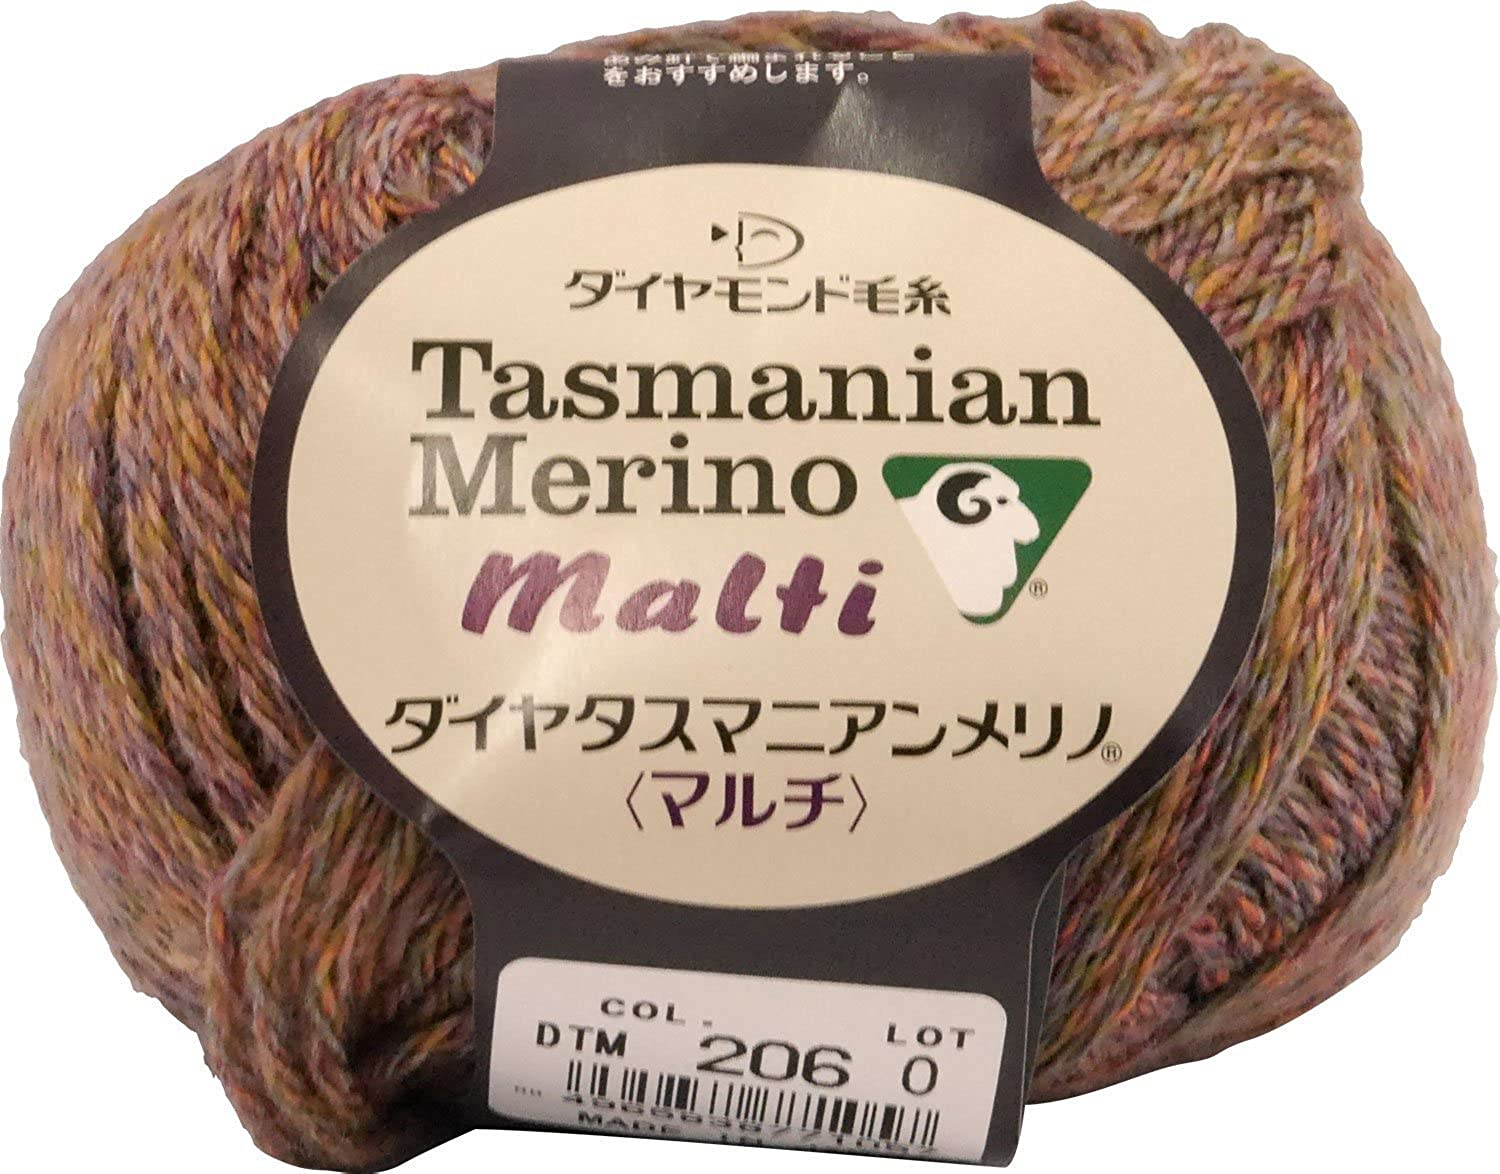 Diamond yarn diamond Tasmanian merino wool multi NamiFutoshi col.206 multisystem 40g about 142m